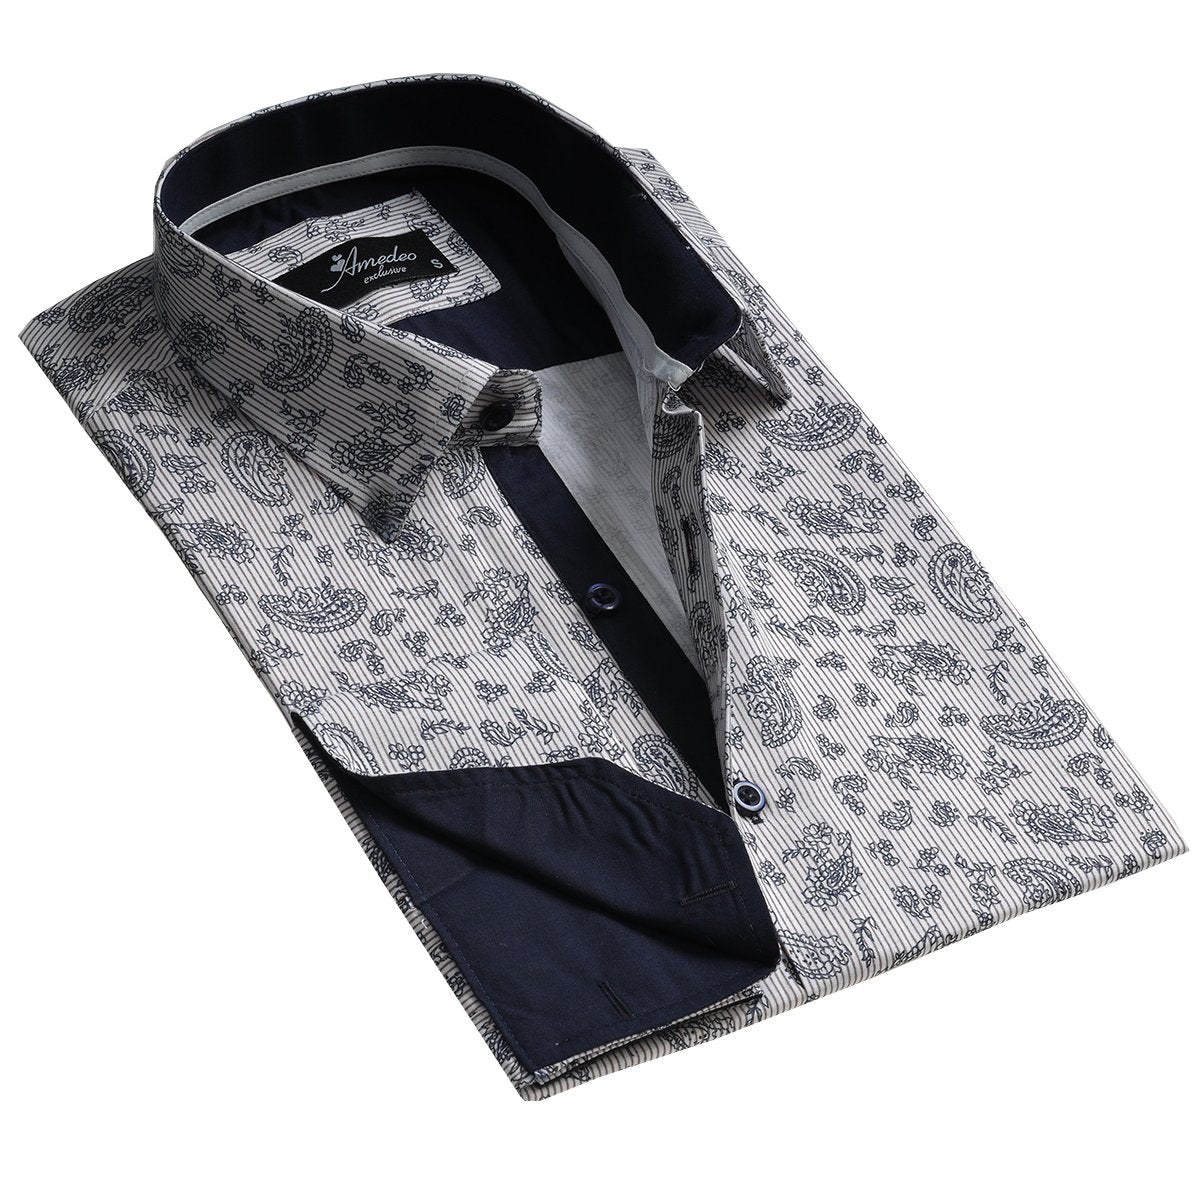 Light Grey Floral Design Men's Reversible Dress Shirt, Button Down Slim Fit with French Cuff Casual and Formal - Amedeo Exclusive